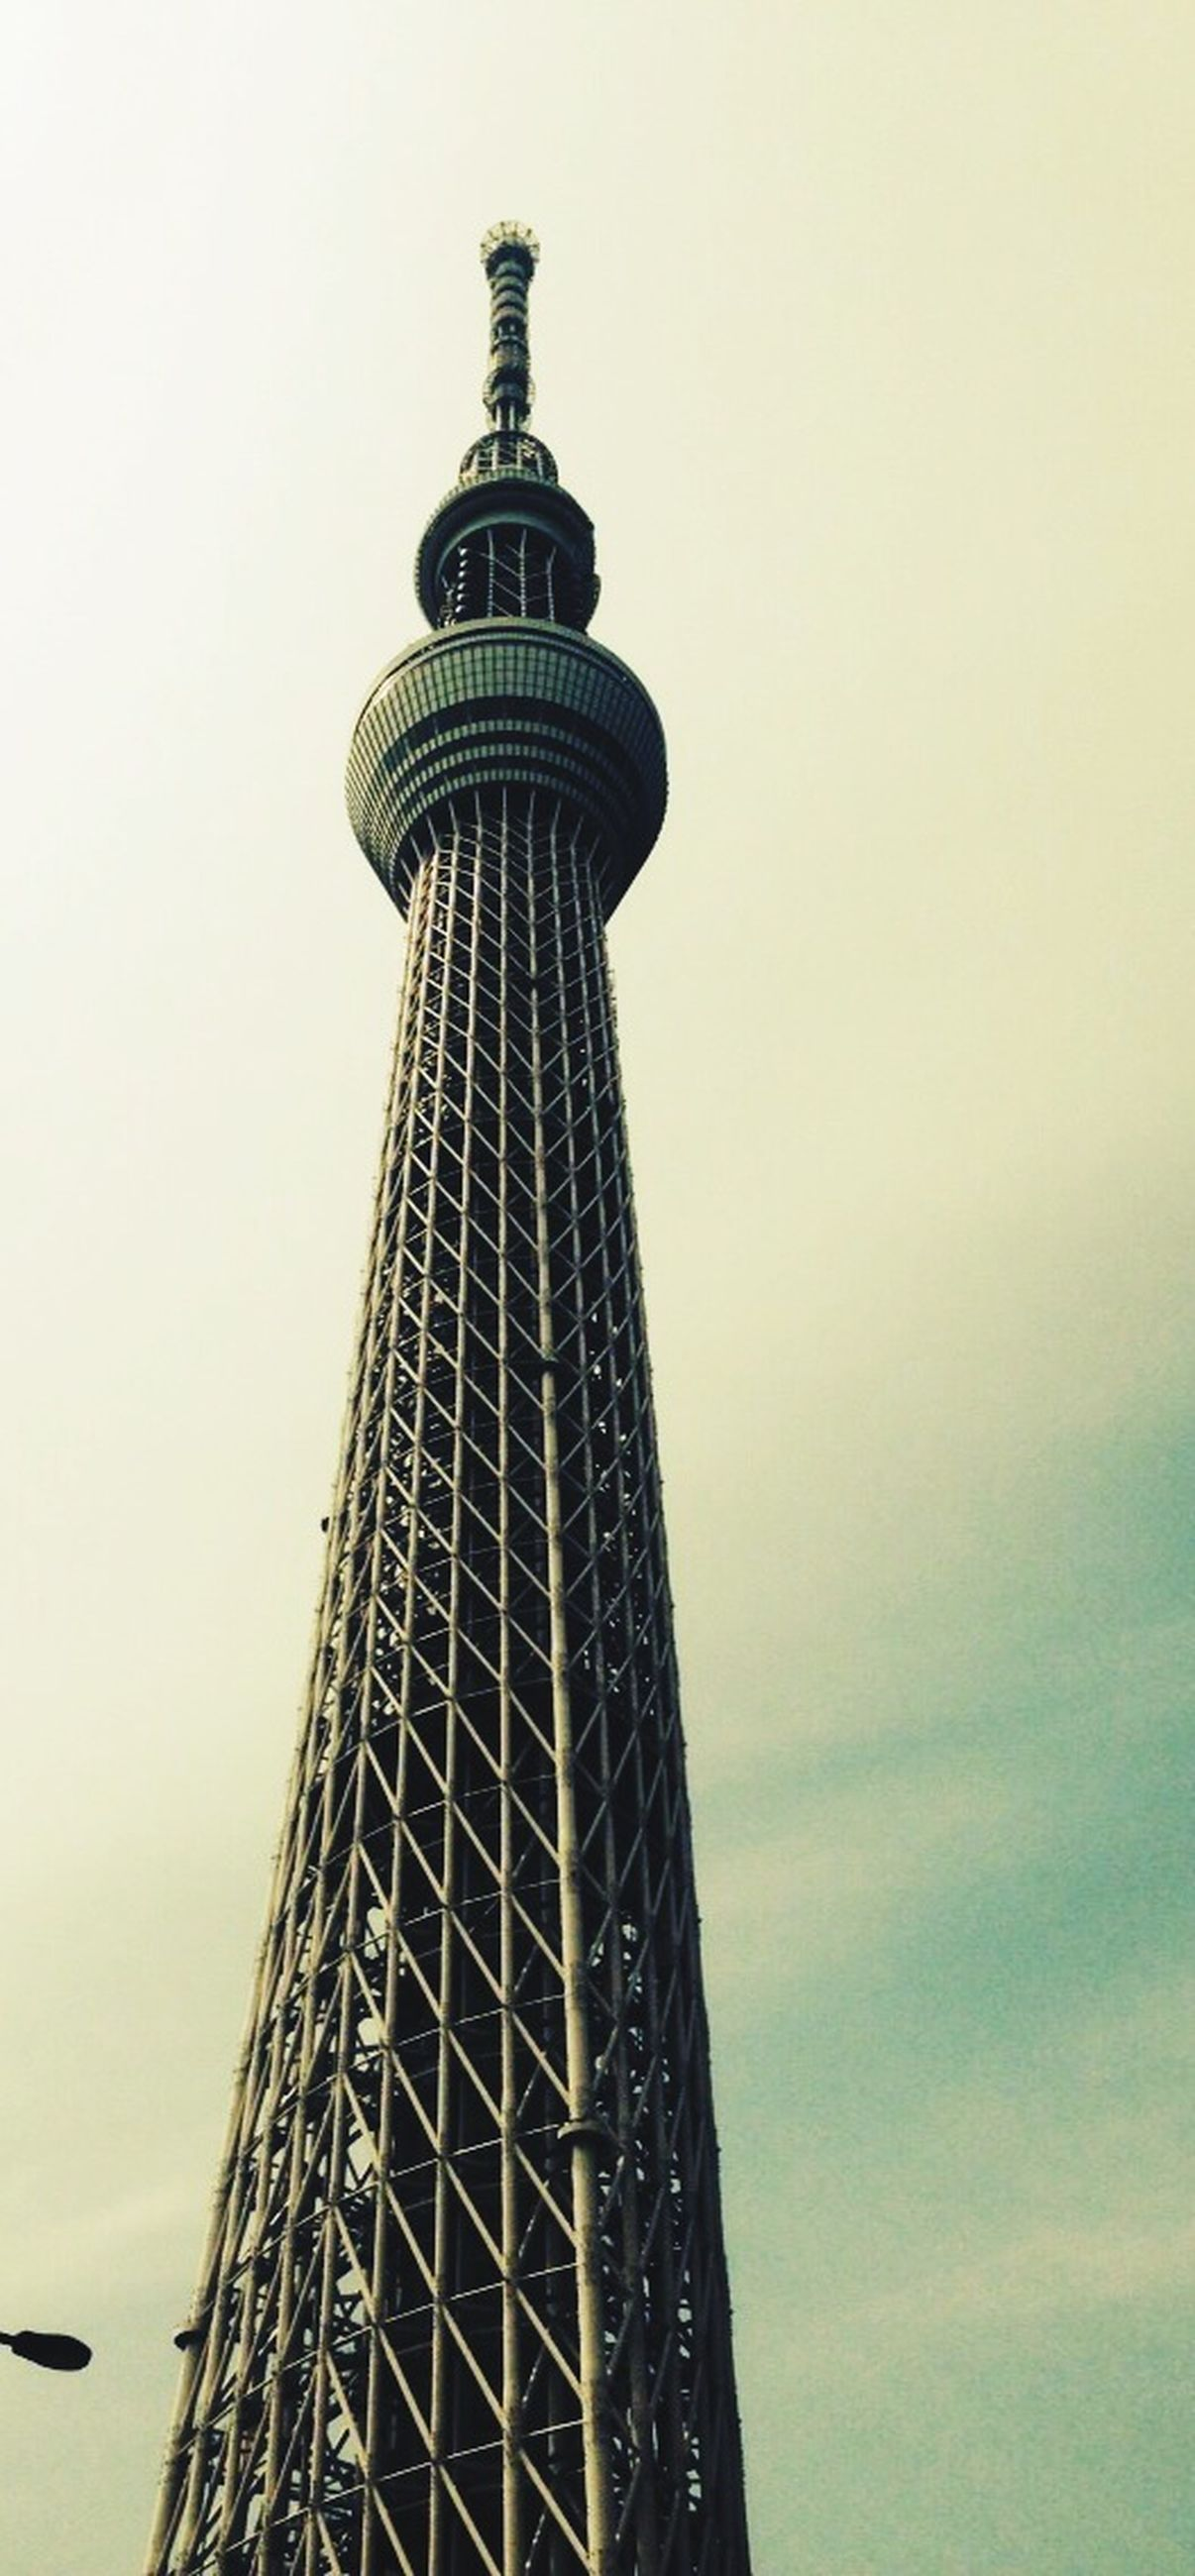 tall - high, tower, architecture, built structure, low angle view, international landmark, communications tower, building exterior, famous place, capital cities, tourism, clear sky, travel destinations, travel, tall, skyscraper, copy space, modern, communication, sky